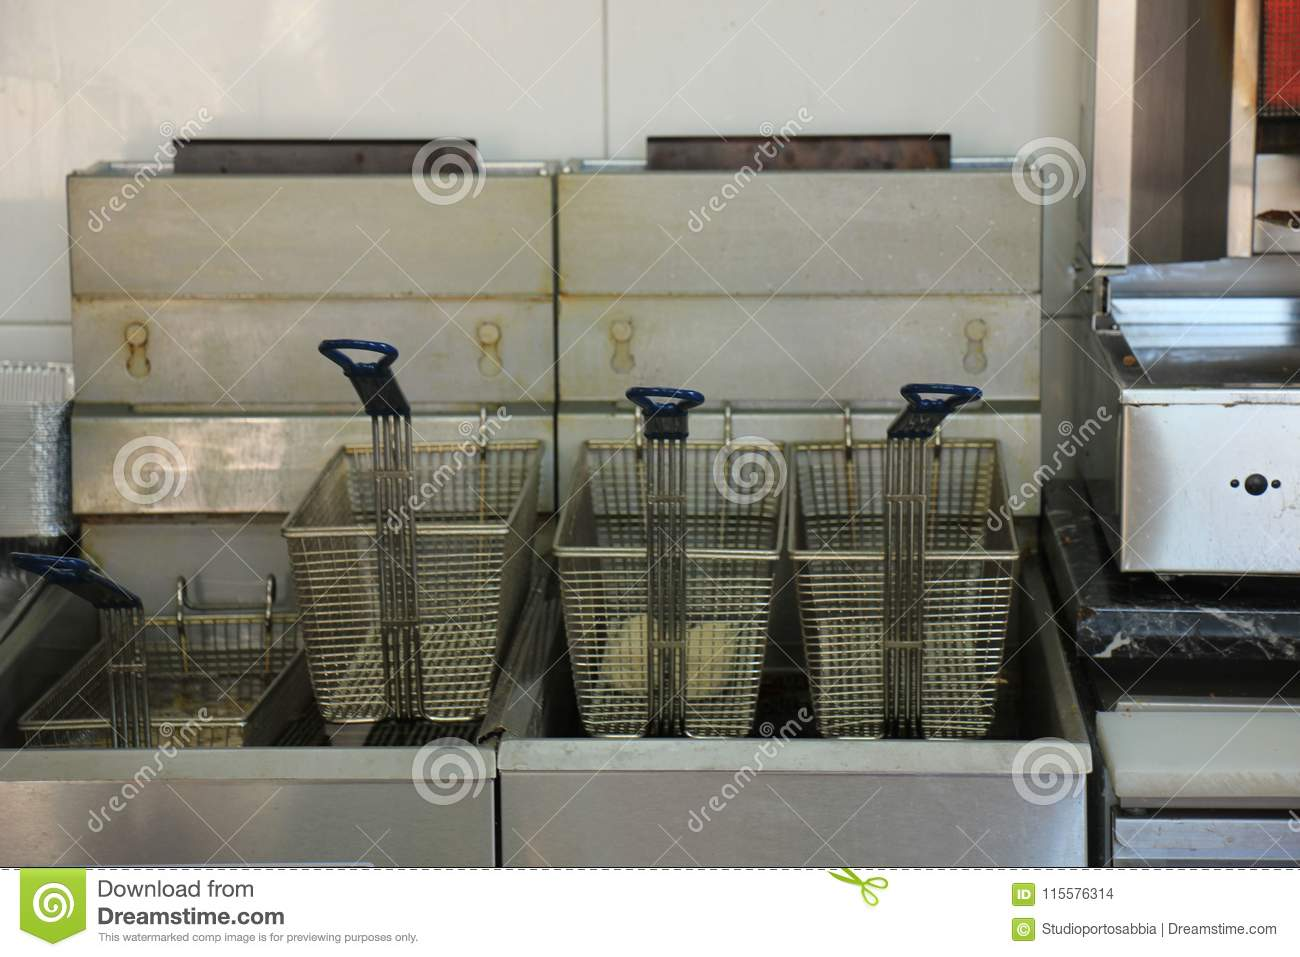 Fast food restaurant interior stock images photos